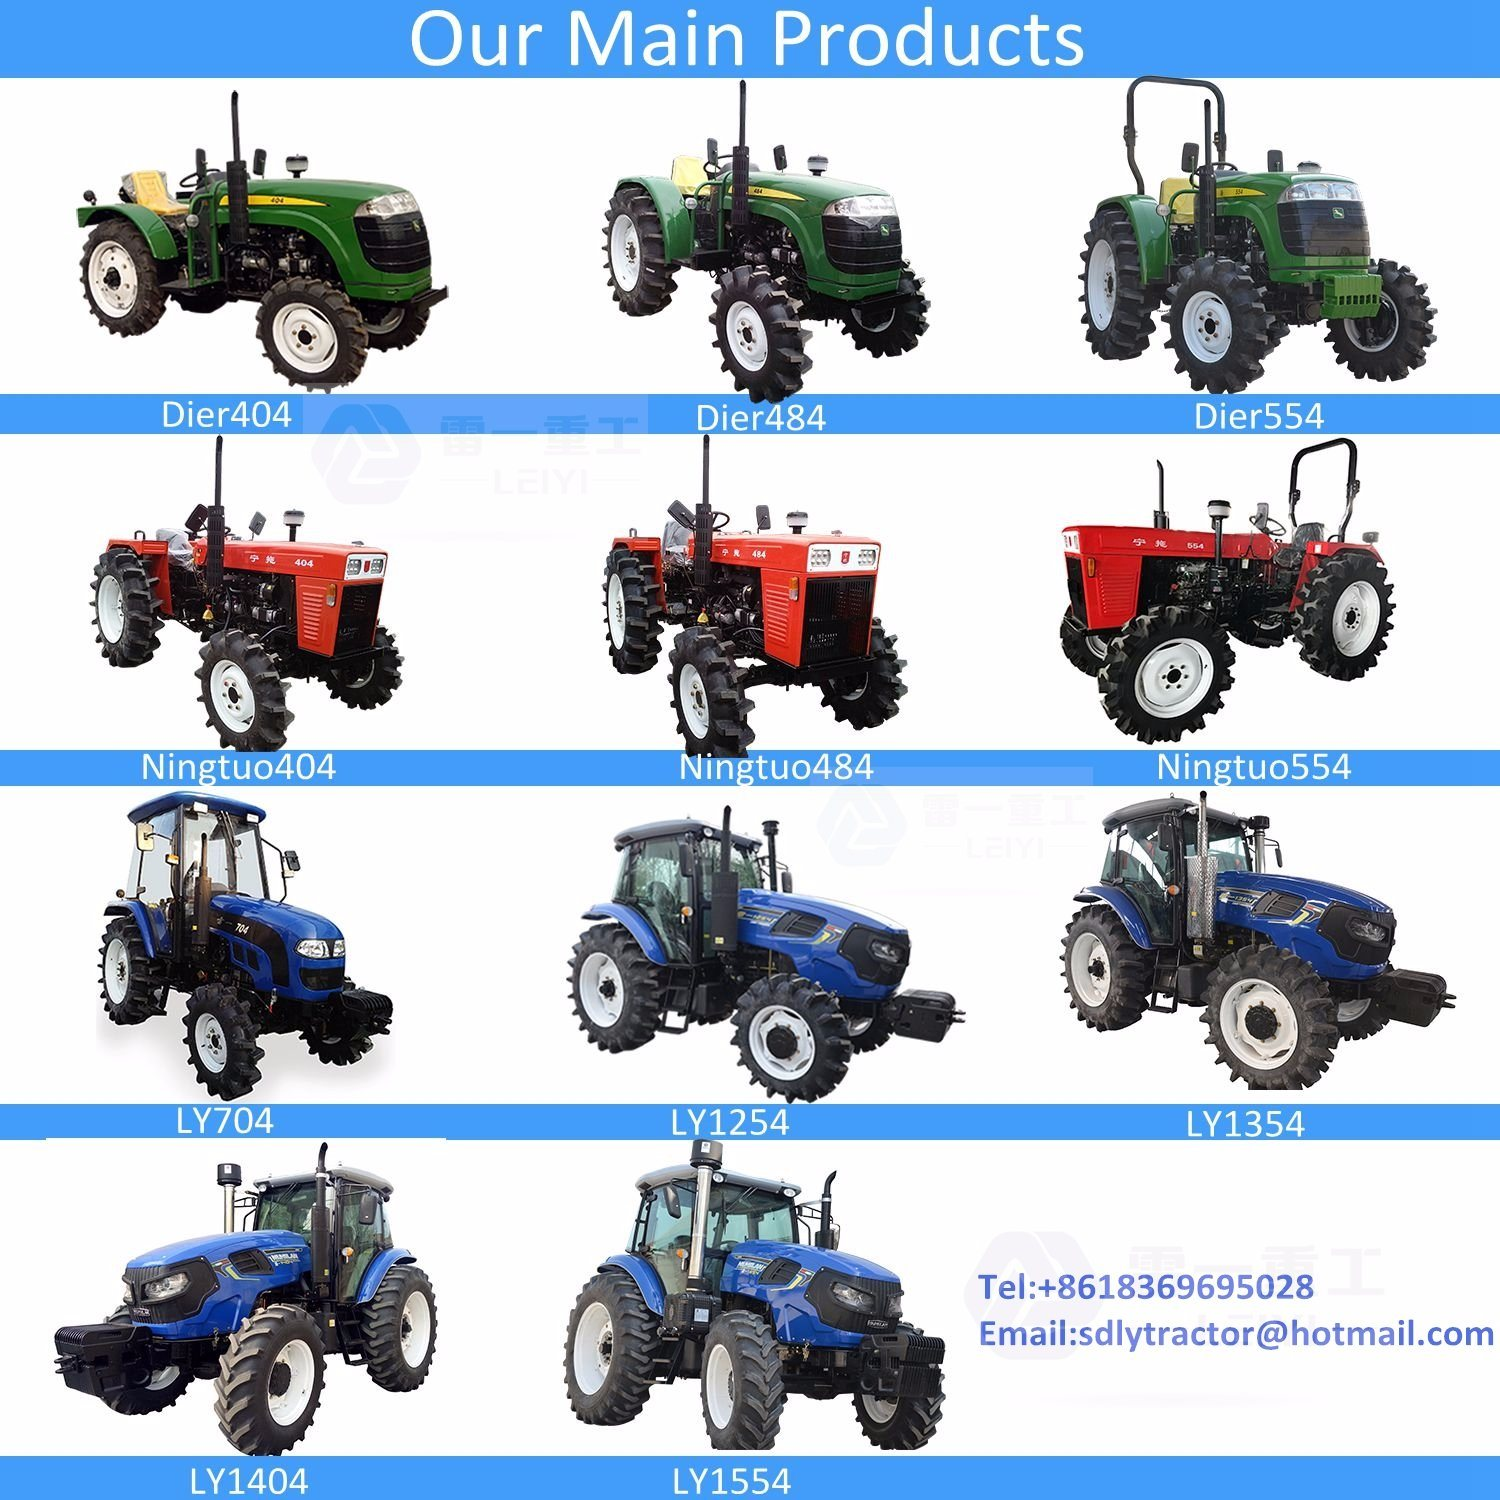 Chinese Agricultural Wheeled Small/Farm/Garden/Compact/Narrow/Mini/Walking Tractor for Different Fields Use (704/1254/1354/1404/1554)